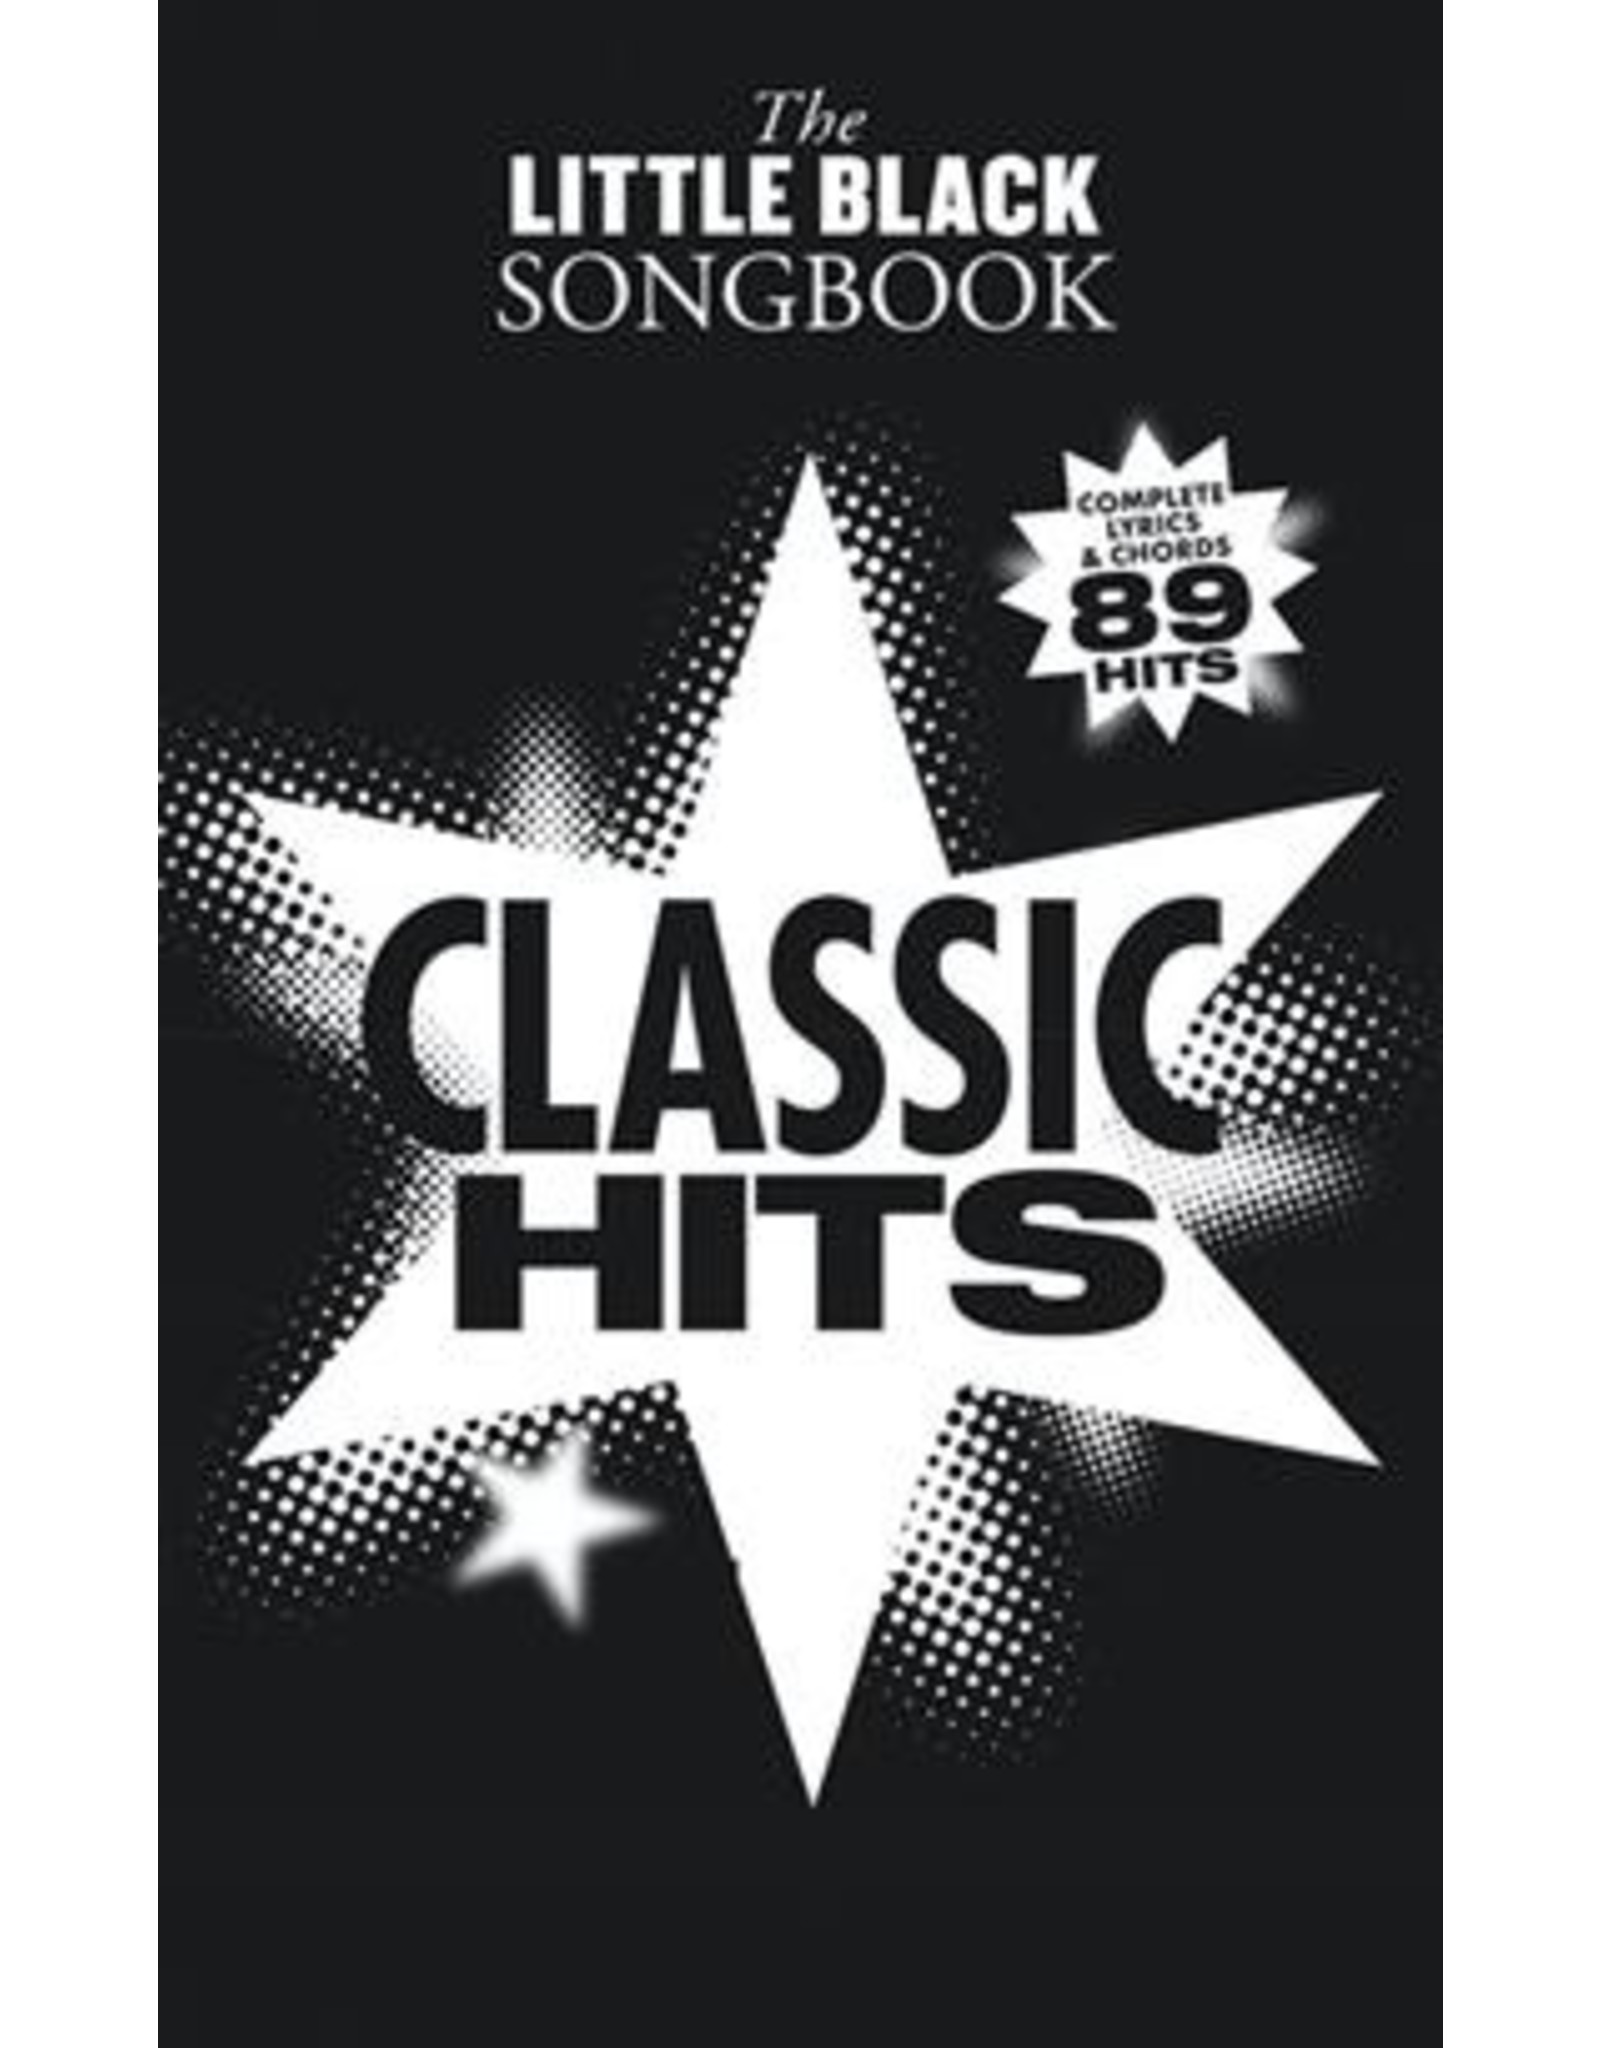 The Little Black Songbook: Classic Hits